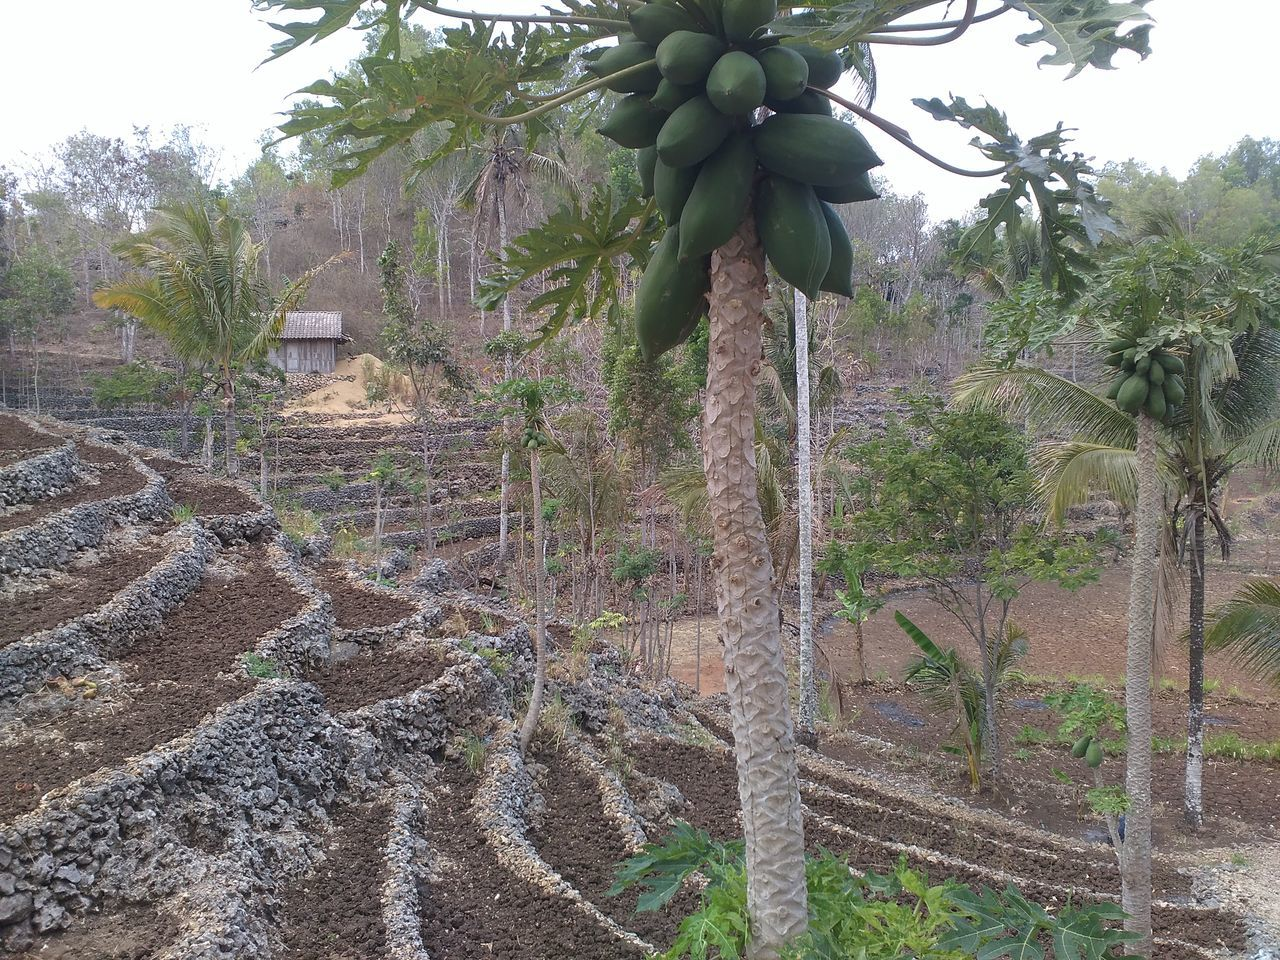 How Do We Build The World? Agroforestry Agro-silviculture Wonogiri Plant Photography Indonesianature